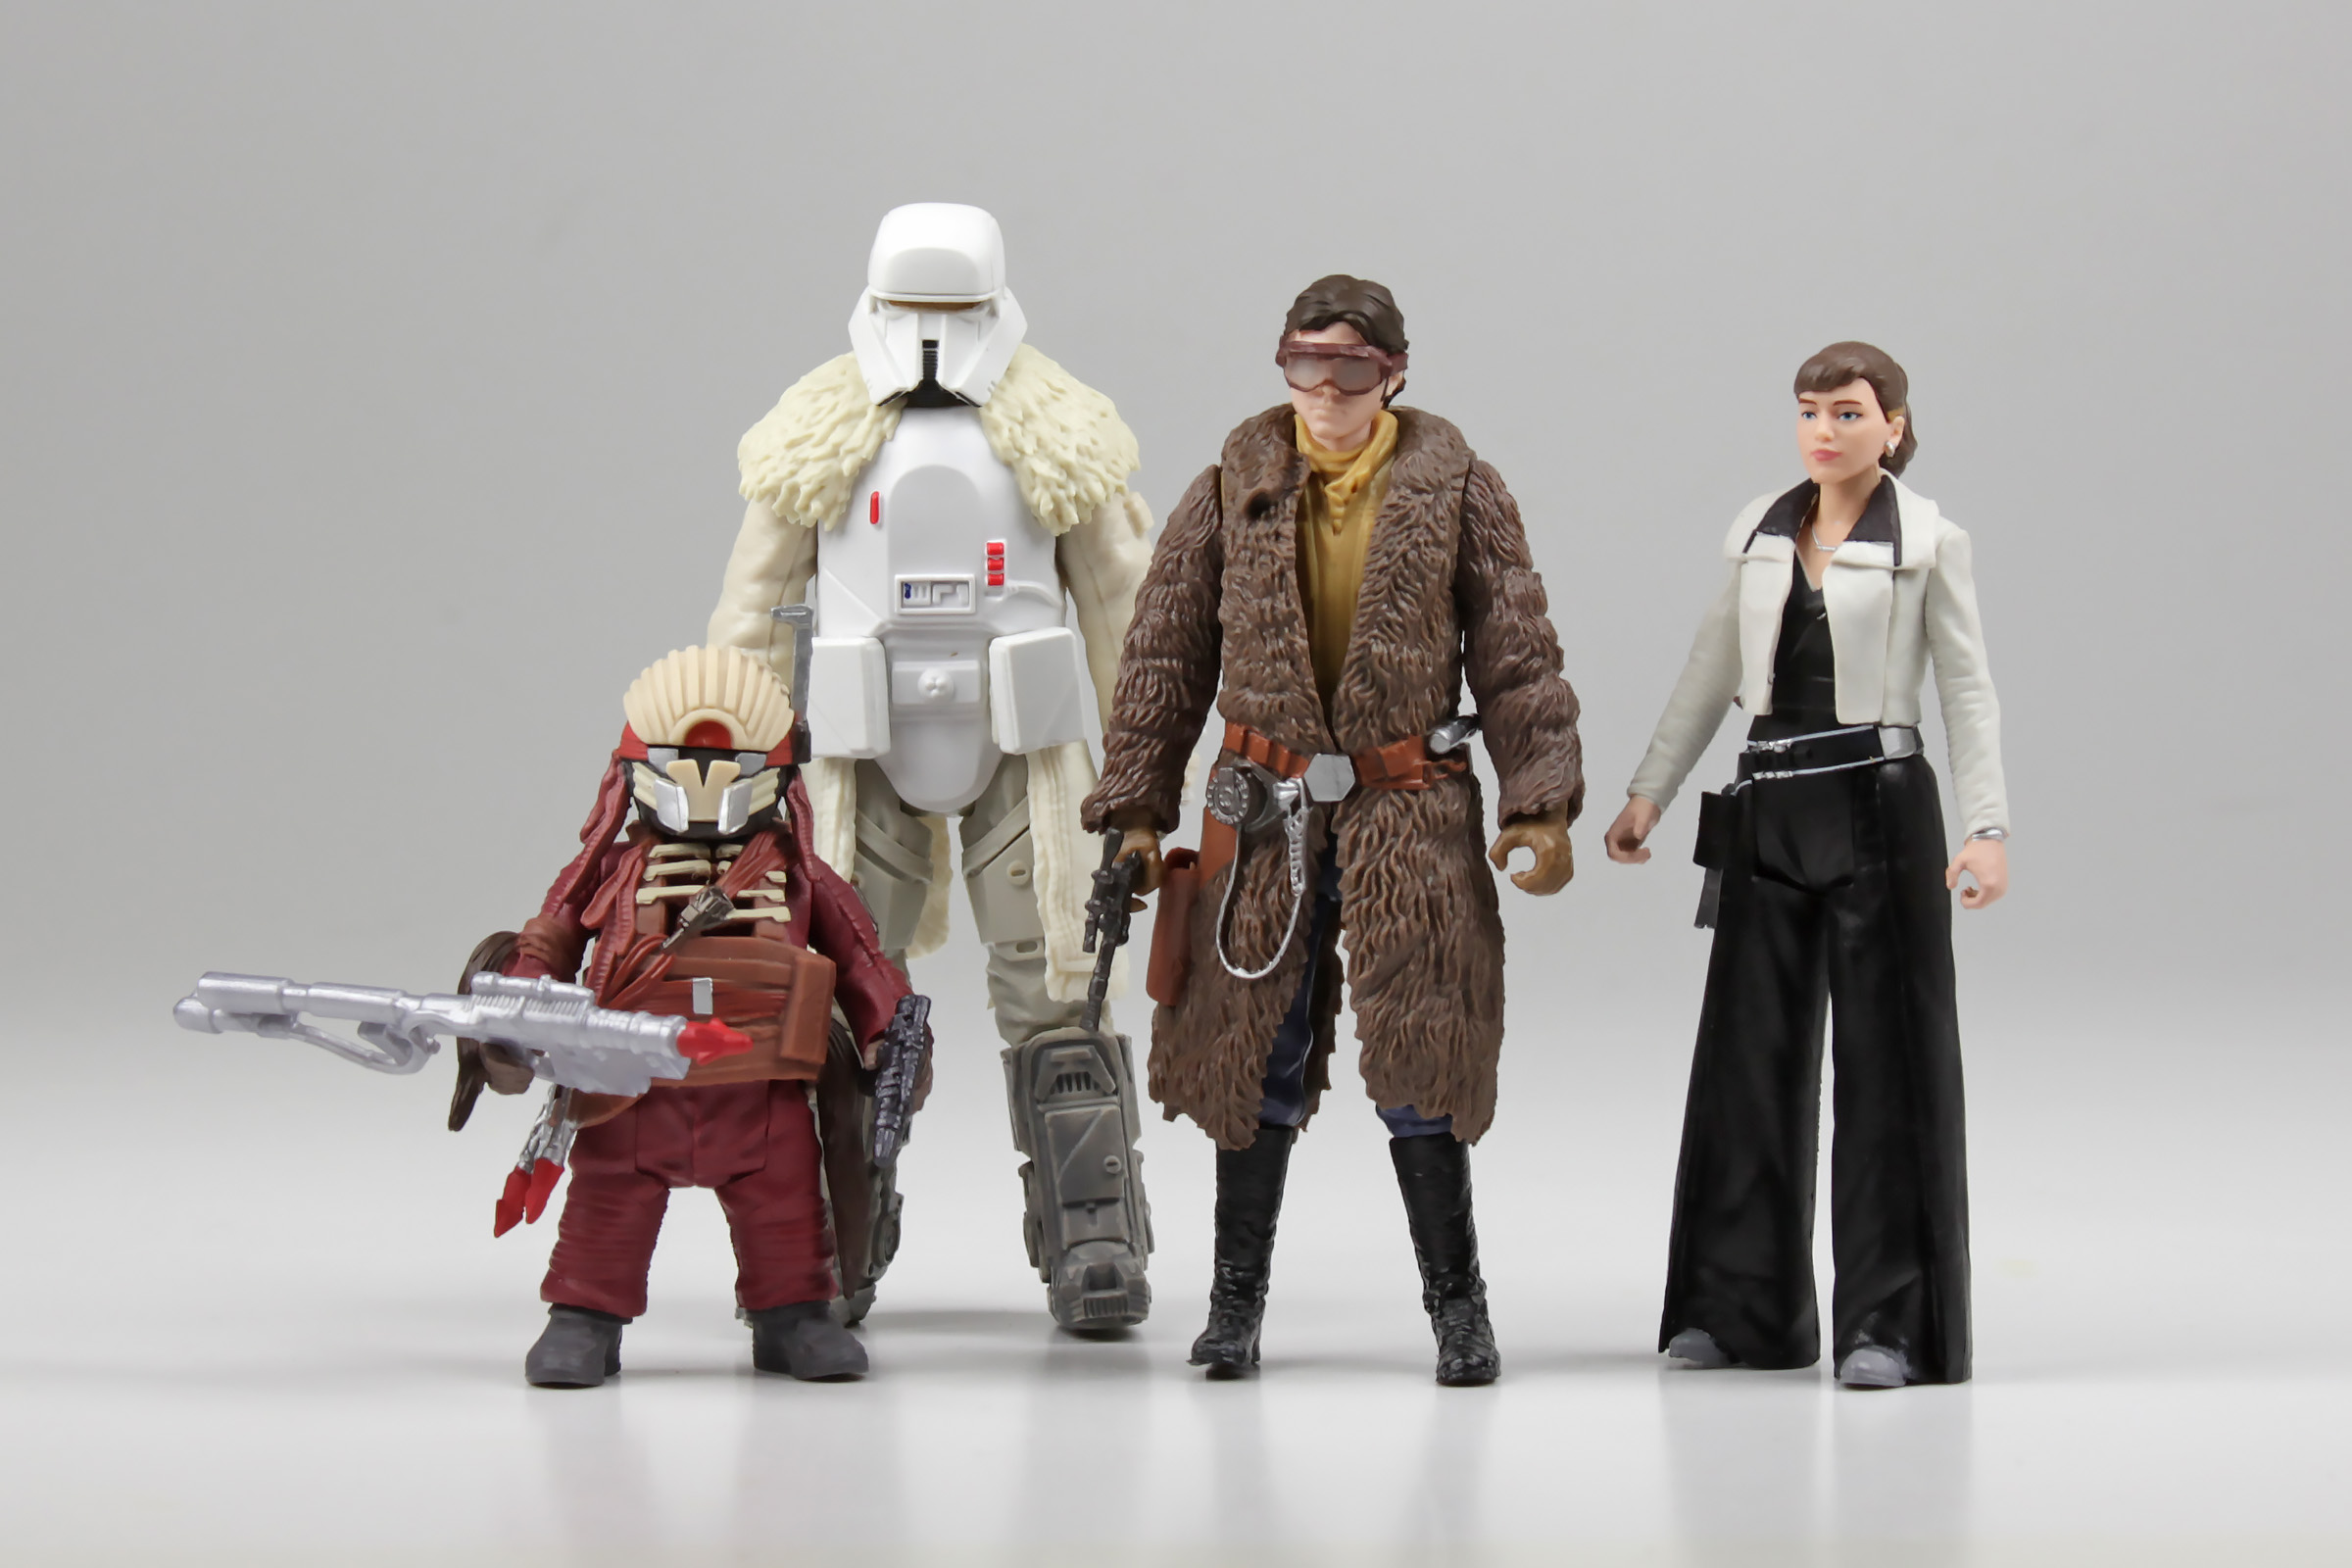 Mission on Vandor-1 action figure 4-pack from the Solo: A Star Wars Story